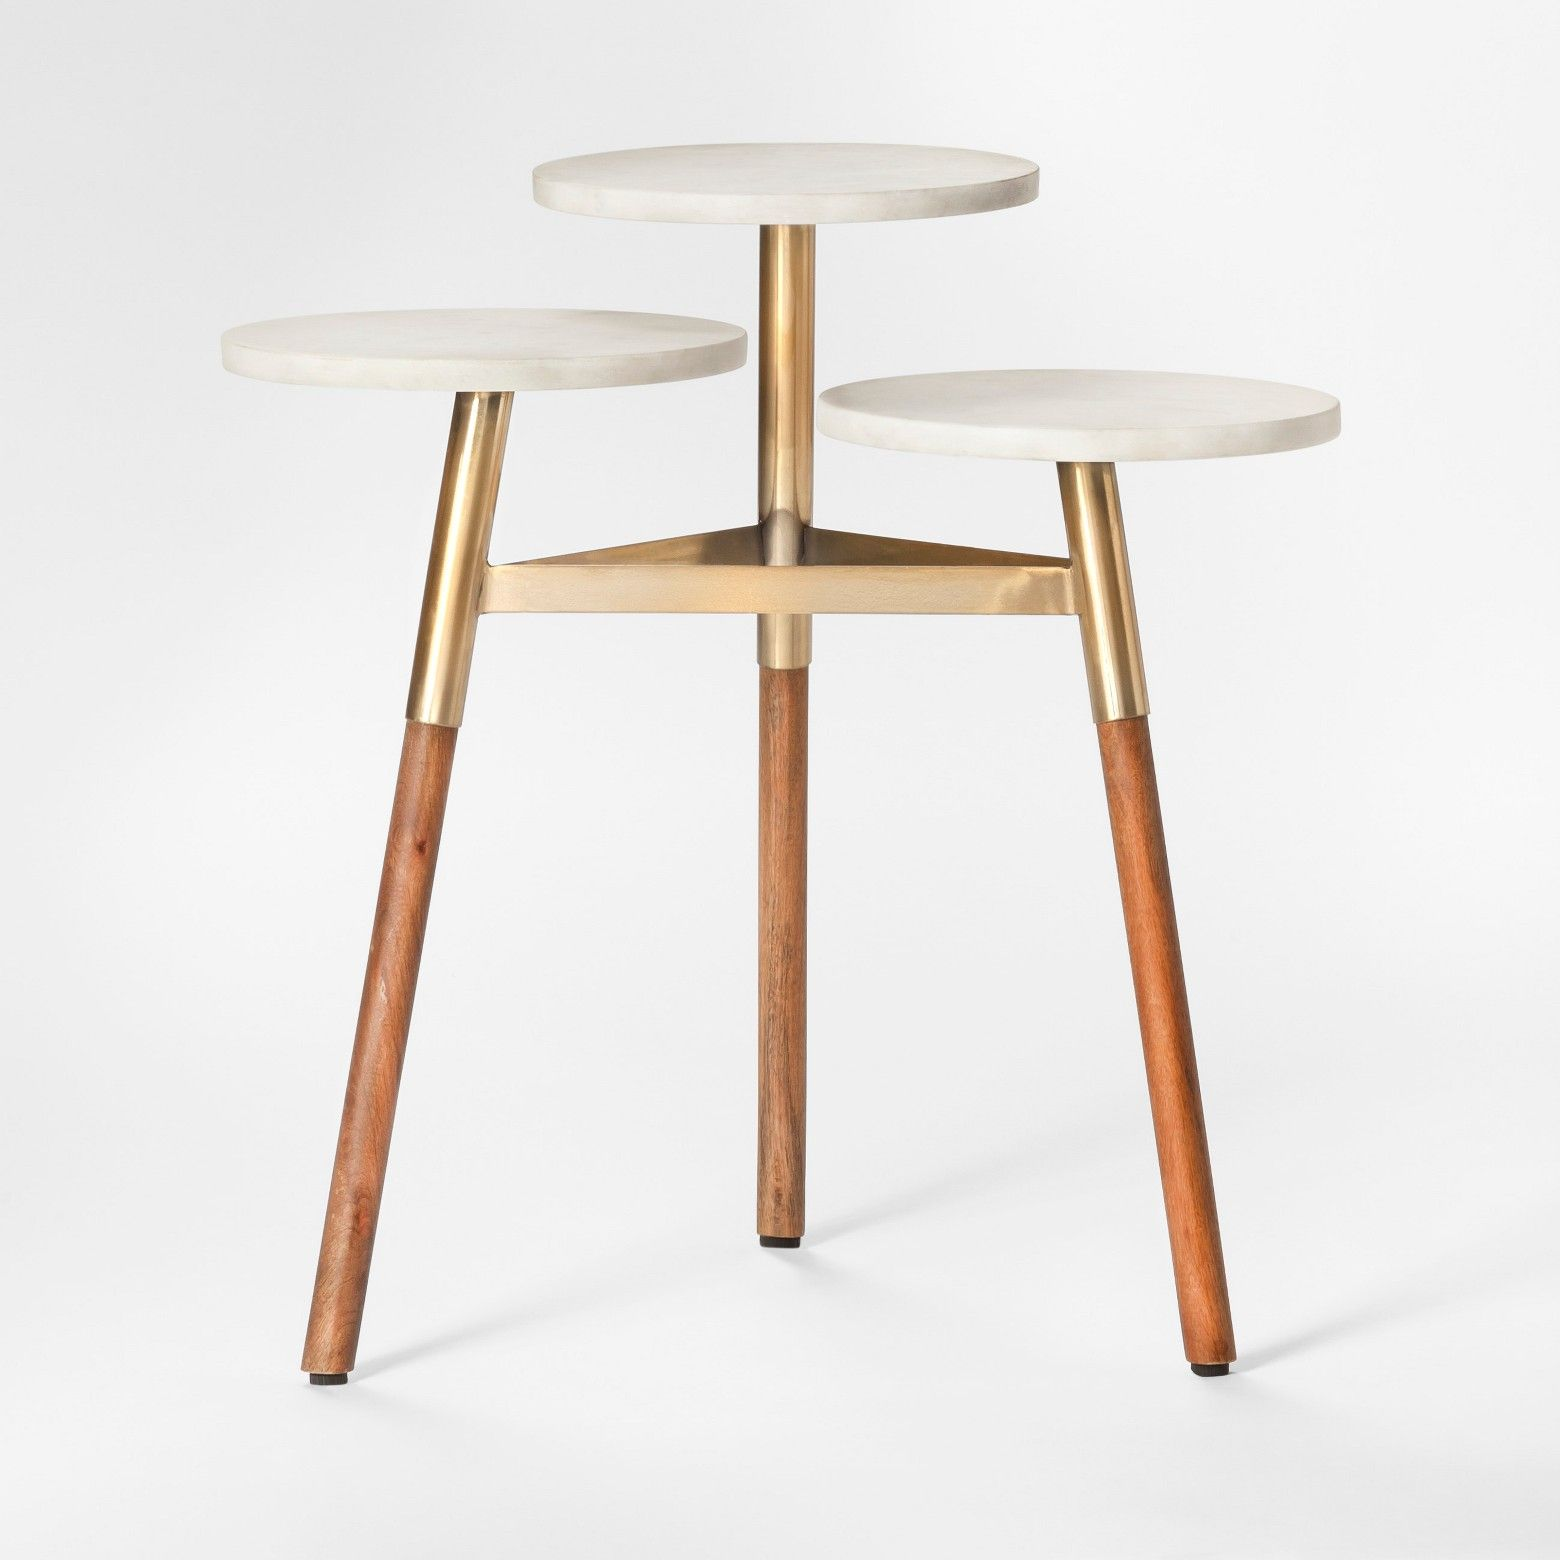 Add Some Unique And Modern Style To Your Favorite Space With The Three Tiered Marble Accent Table From Proje Marble Accent Table Wood Accent Table Accent Table